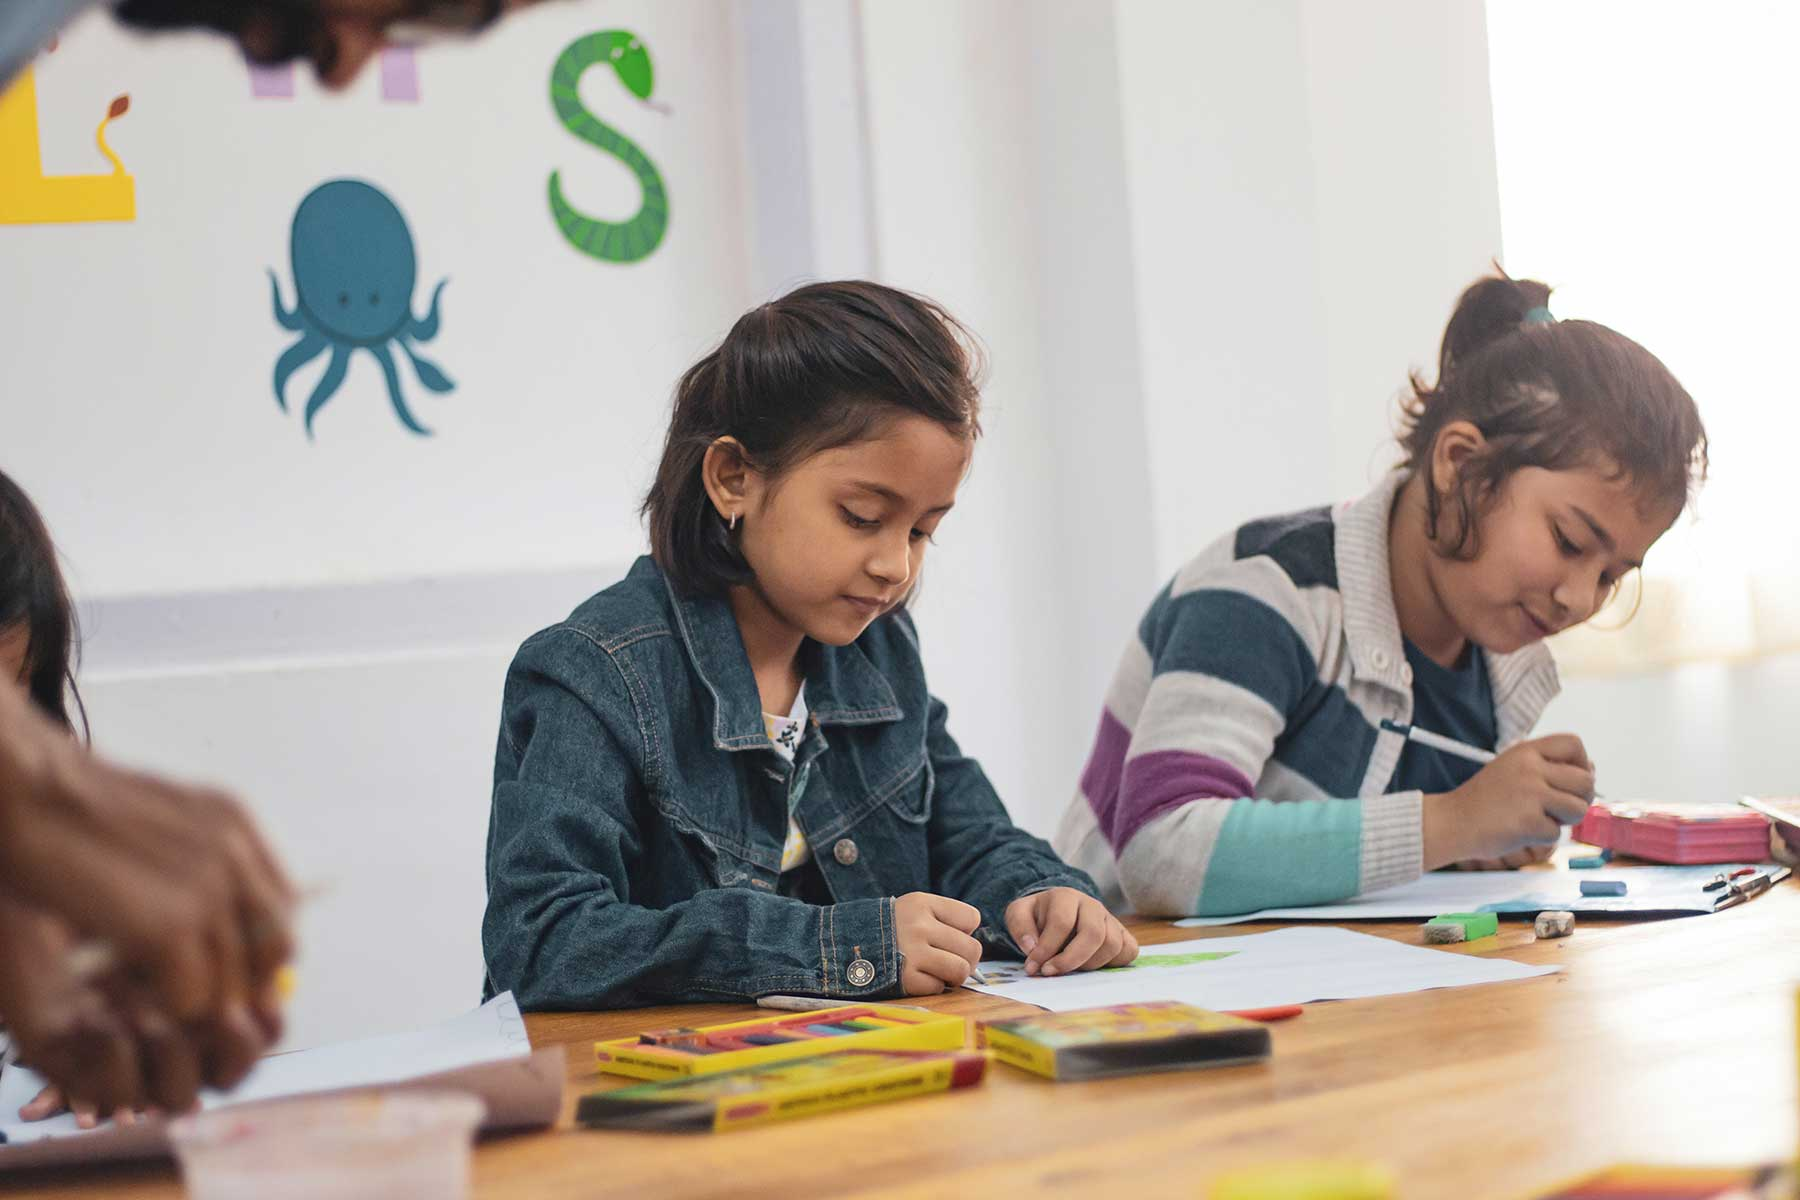 Immigrant students in a classroom